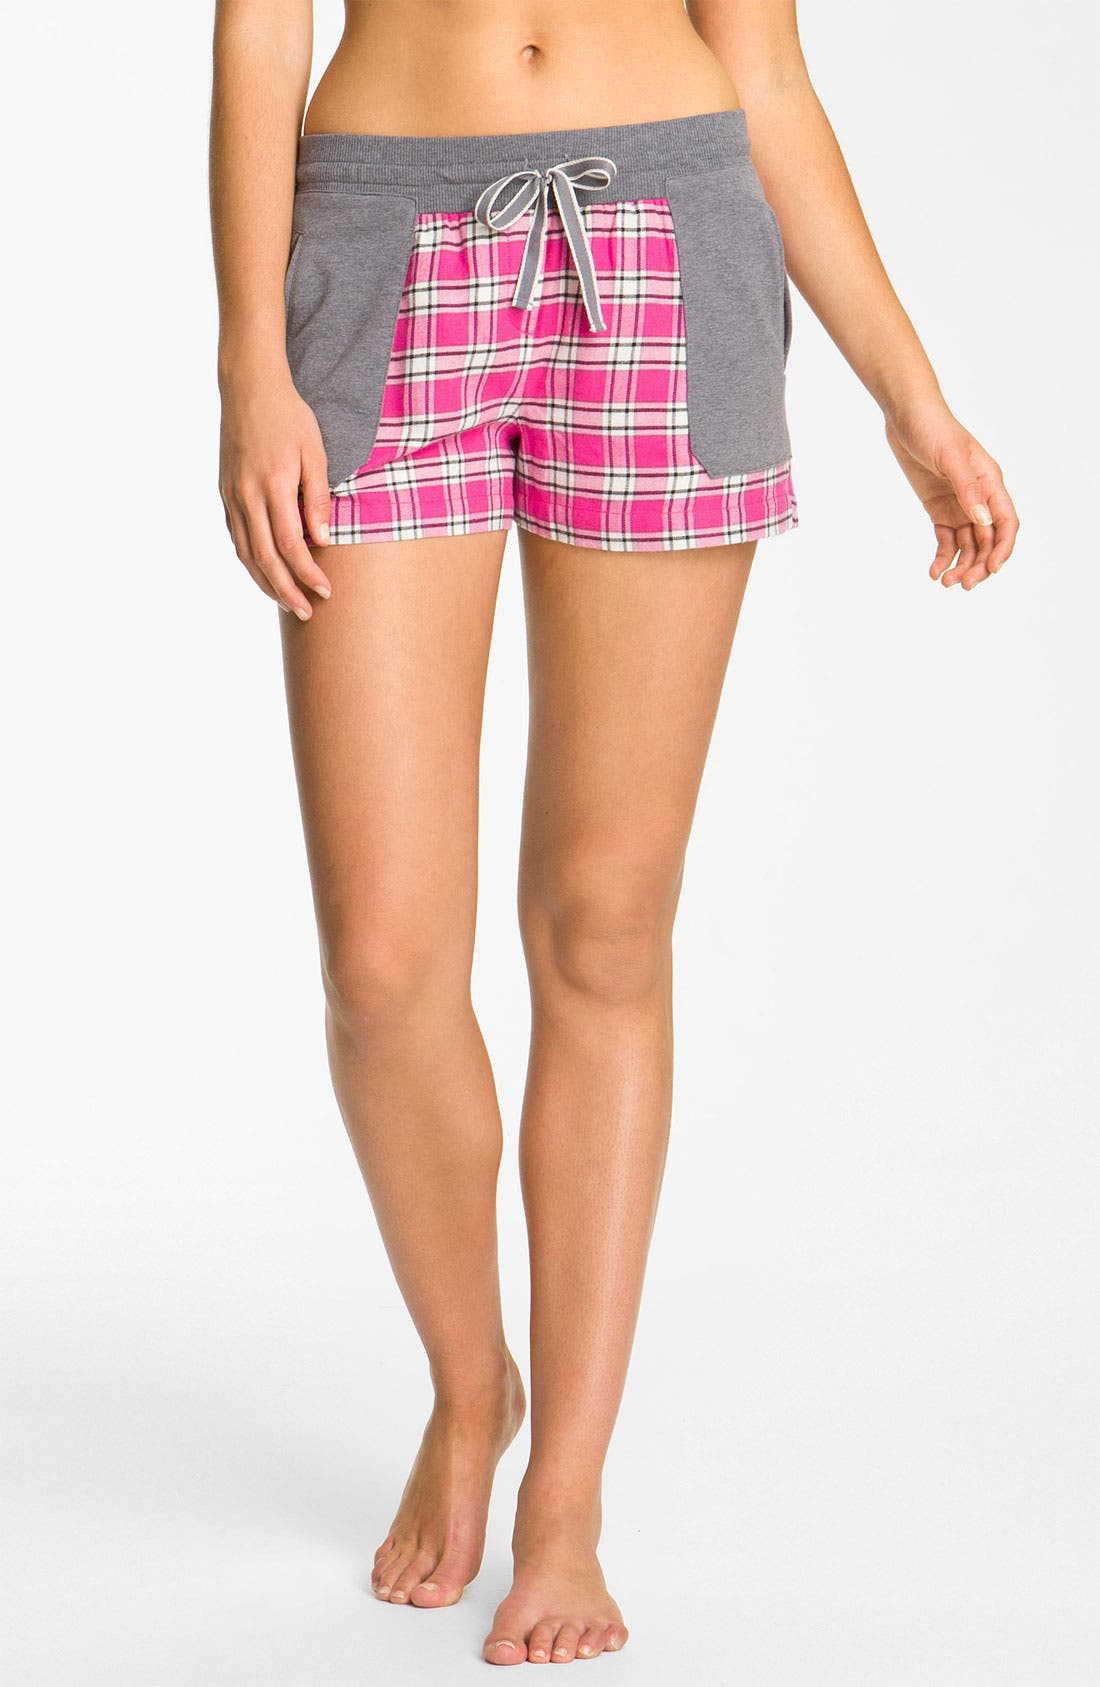 Alternate Image 1 Selected - DKNY 'Pattern Play' Flannel Boxer Shorts